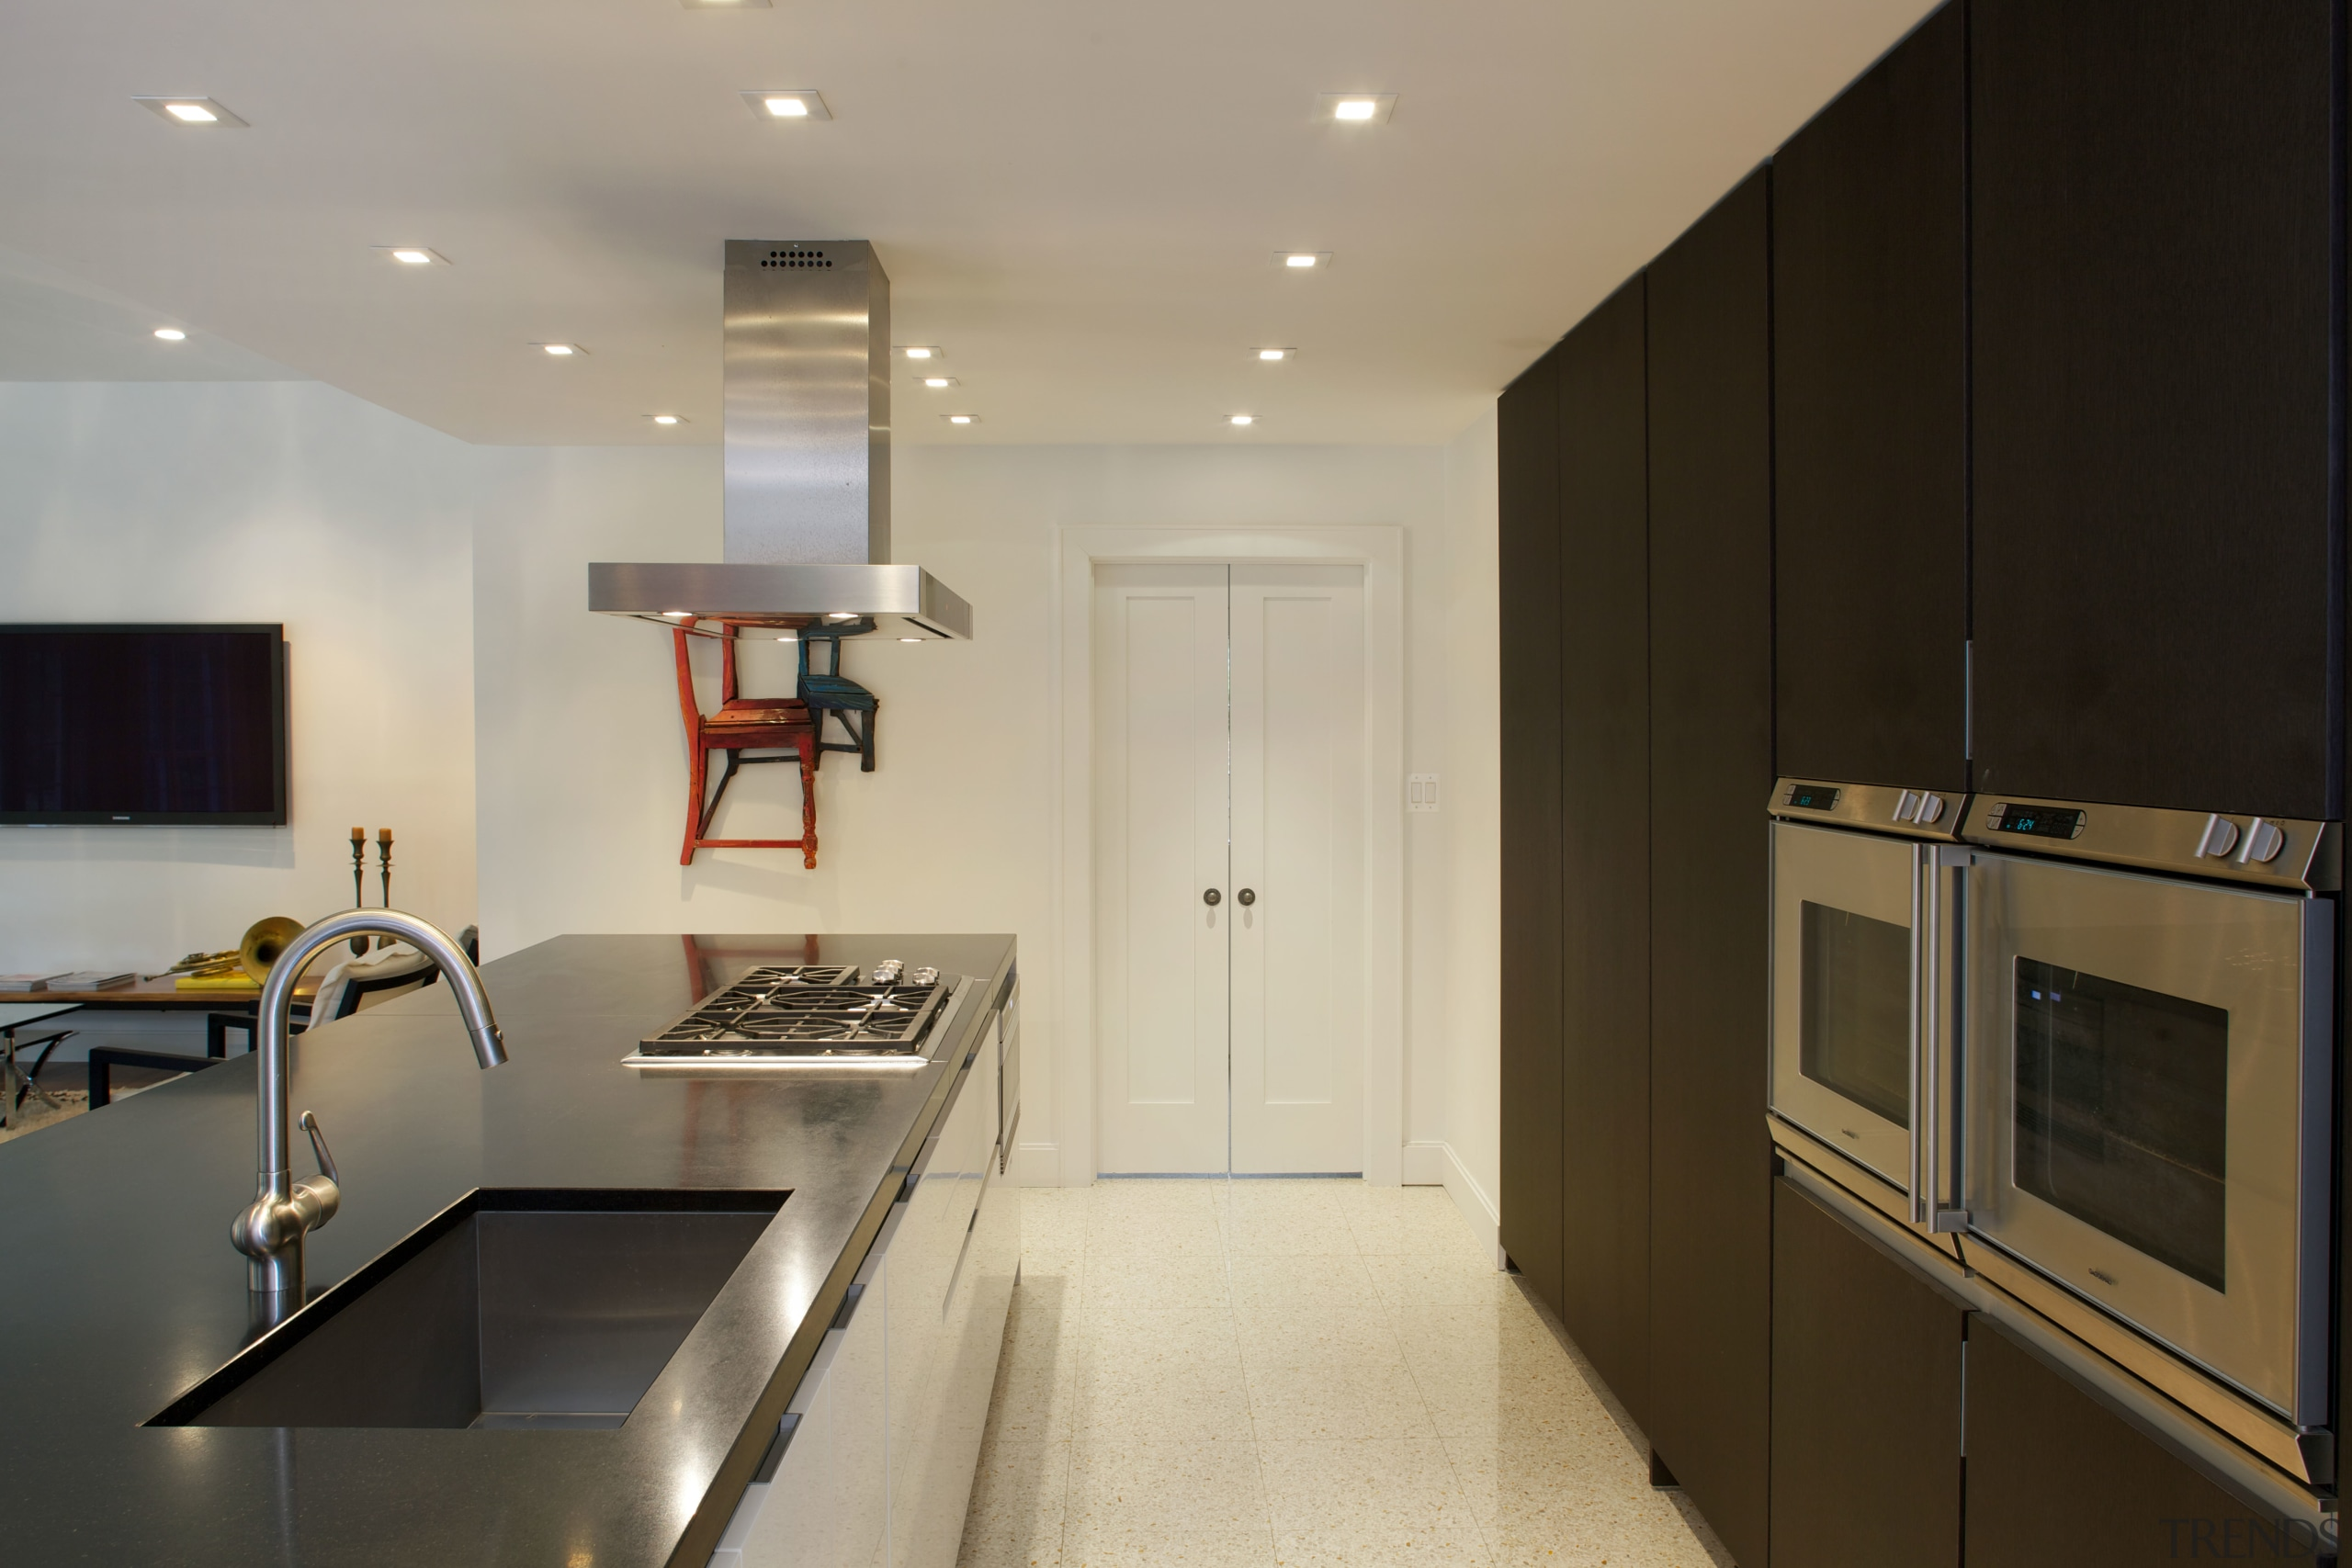 This new kitchen features a long island with cabinetry, countertop, home appliance, interior design, kitchen, real estate, room, orange, black